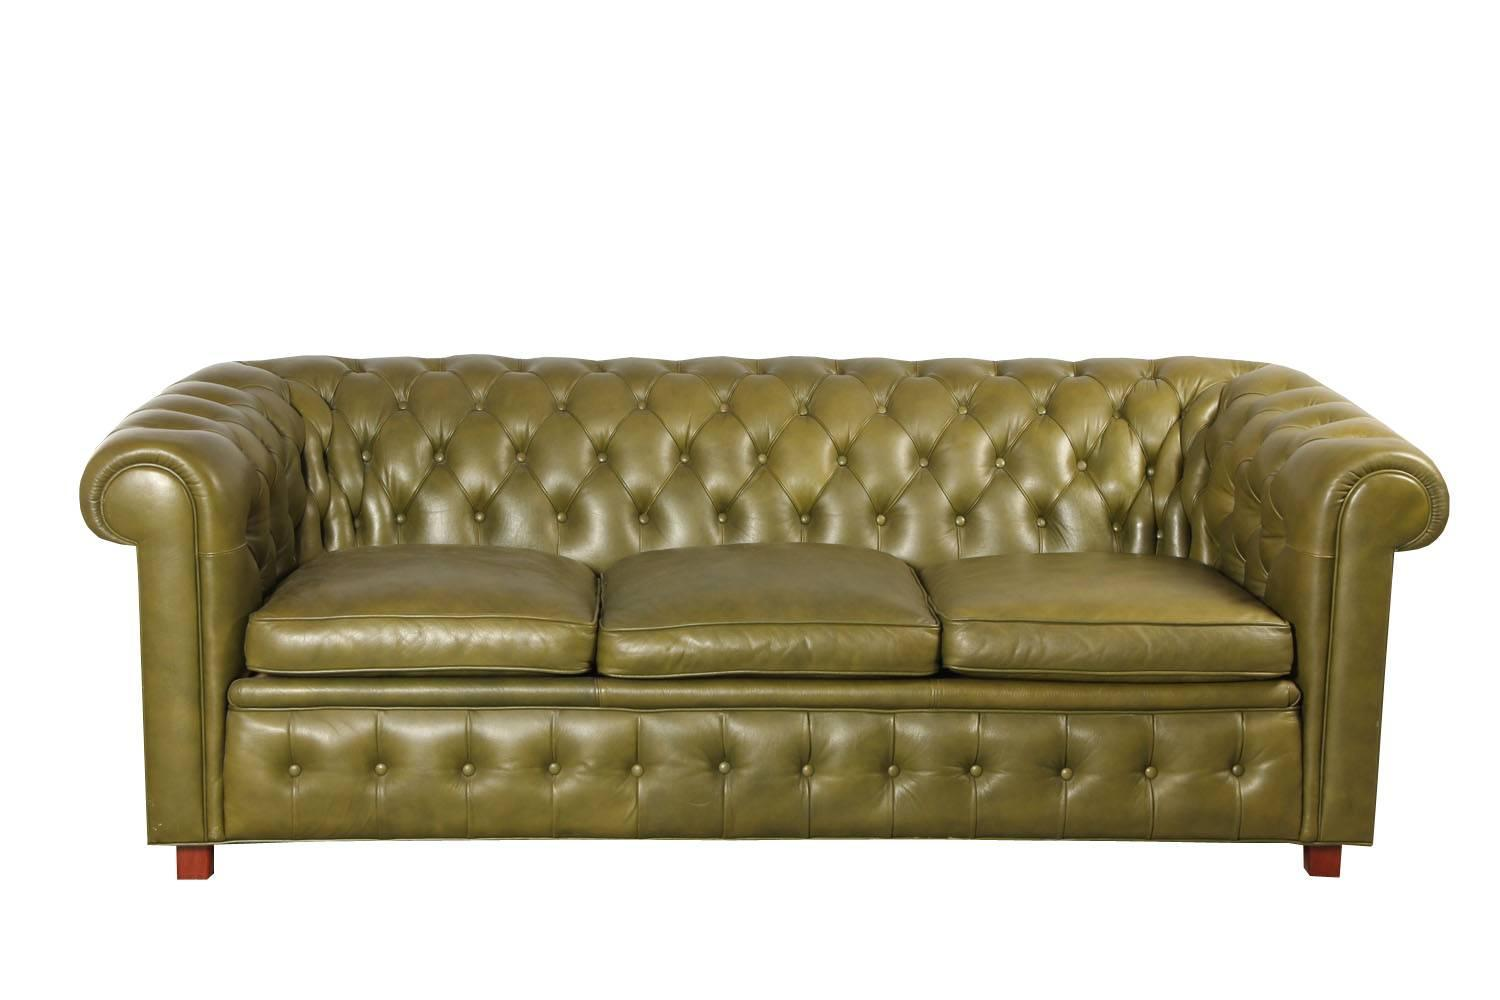 Chesterfield Style Sofa Xxx Sofa Chippendale Chesterfield 1ap10 Jpg, Upholstered Sofa Grey